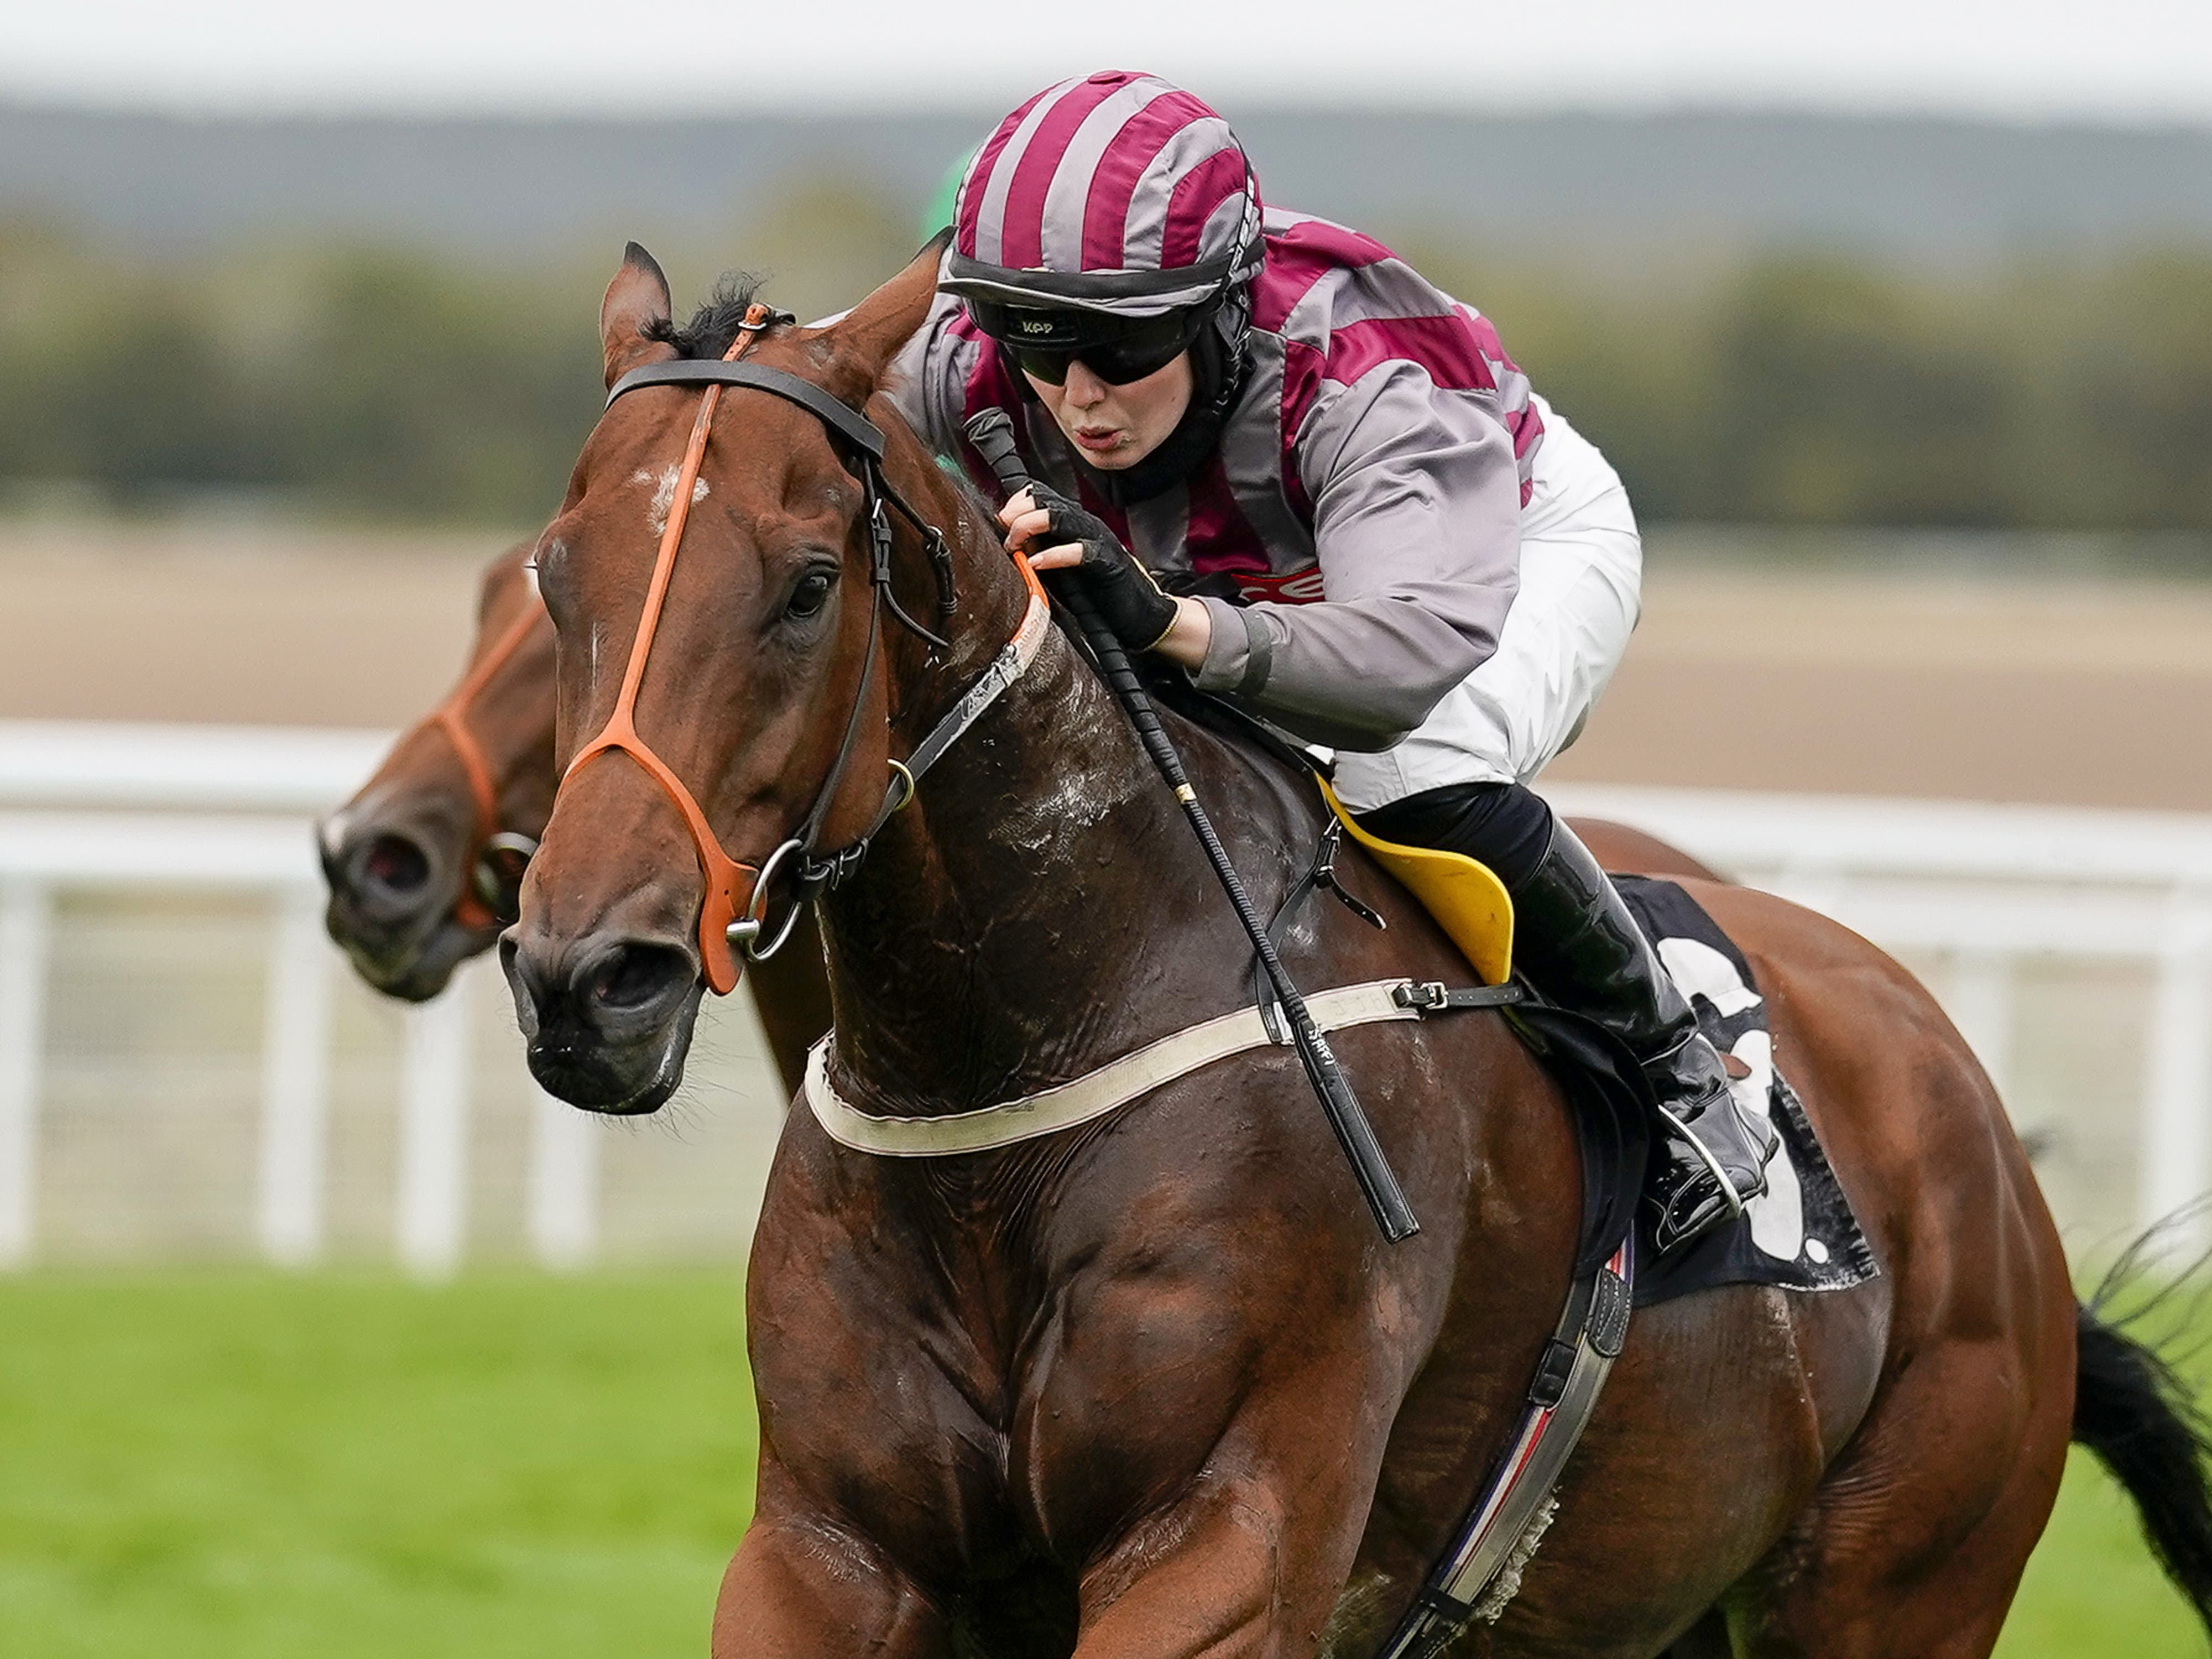 Saffie Osborne winning aboard Pettochside at Windsor before her fall later in the day (Alan Crowhurst/PA) wins The Download The tote Placepot App Apprentice Handicap at Goodwood Racecourse.